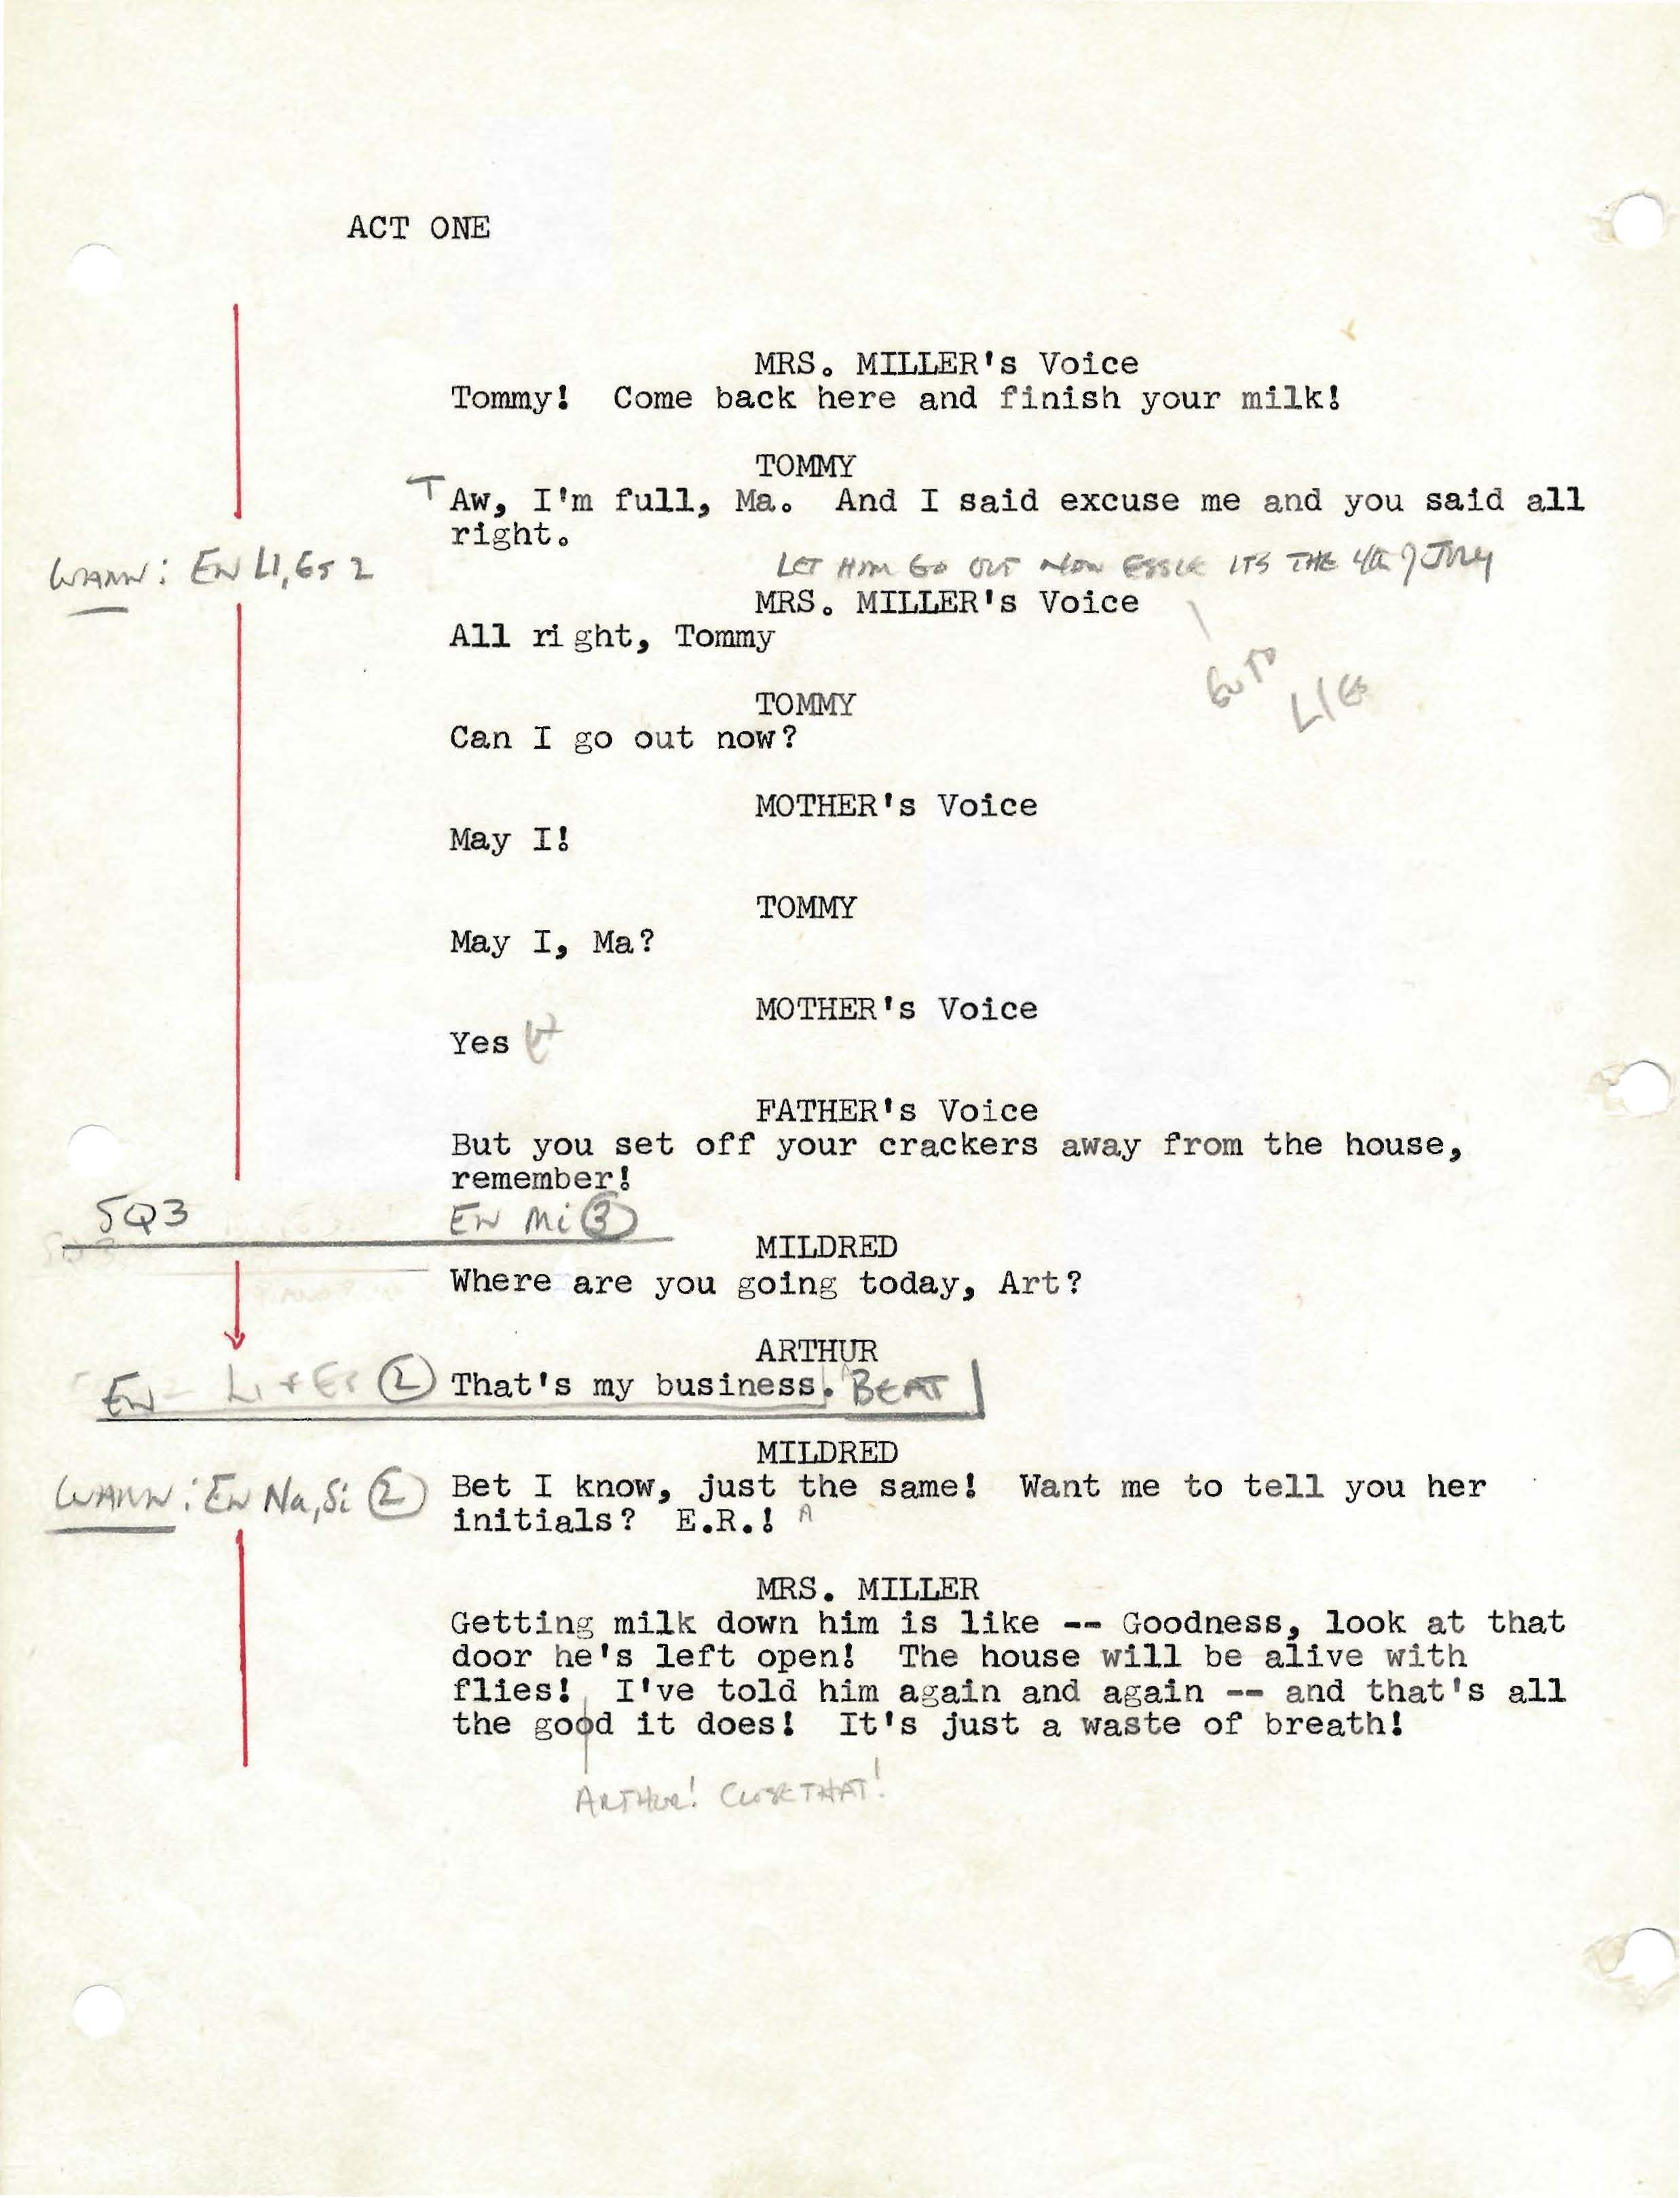 Script from the 1978 Arena Stage Production with notes from director Edward Cornell